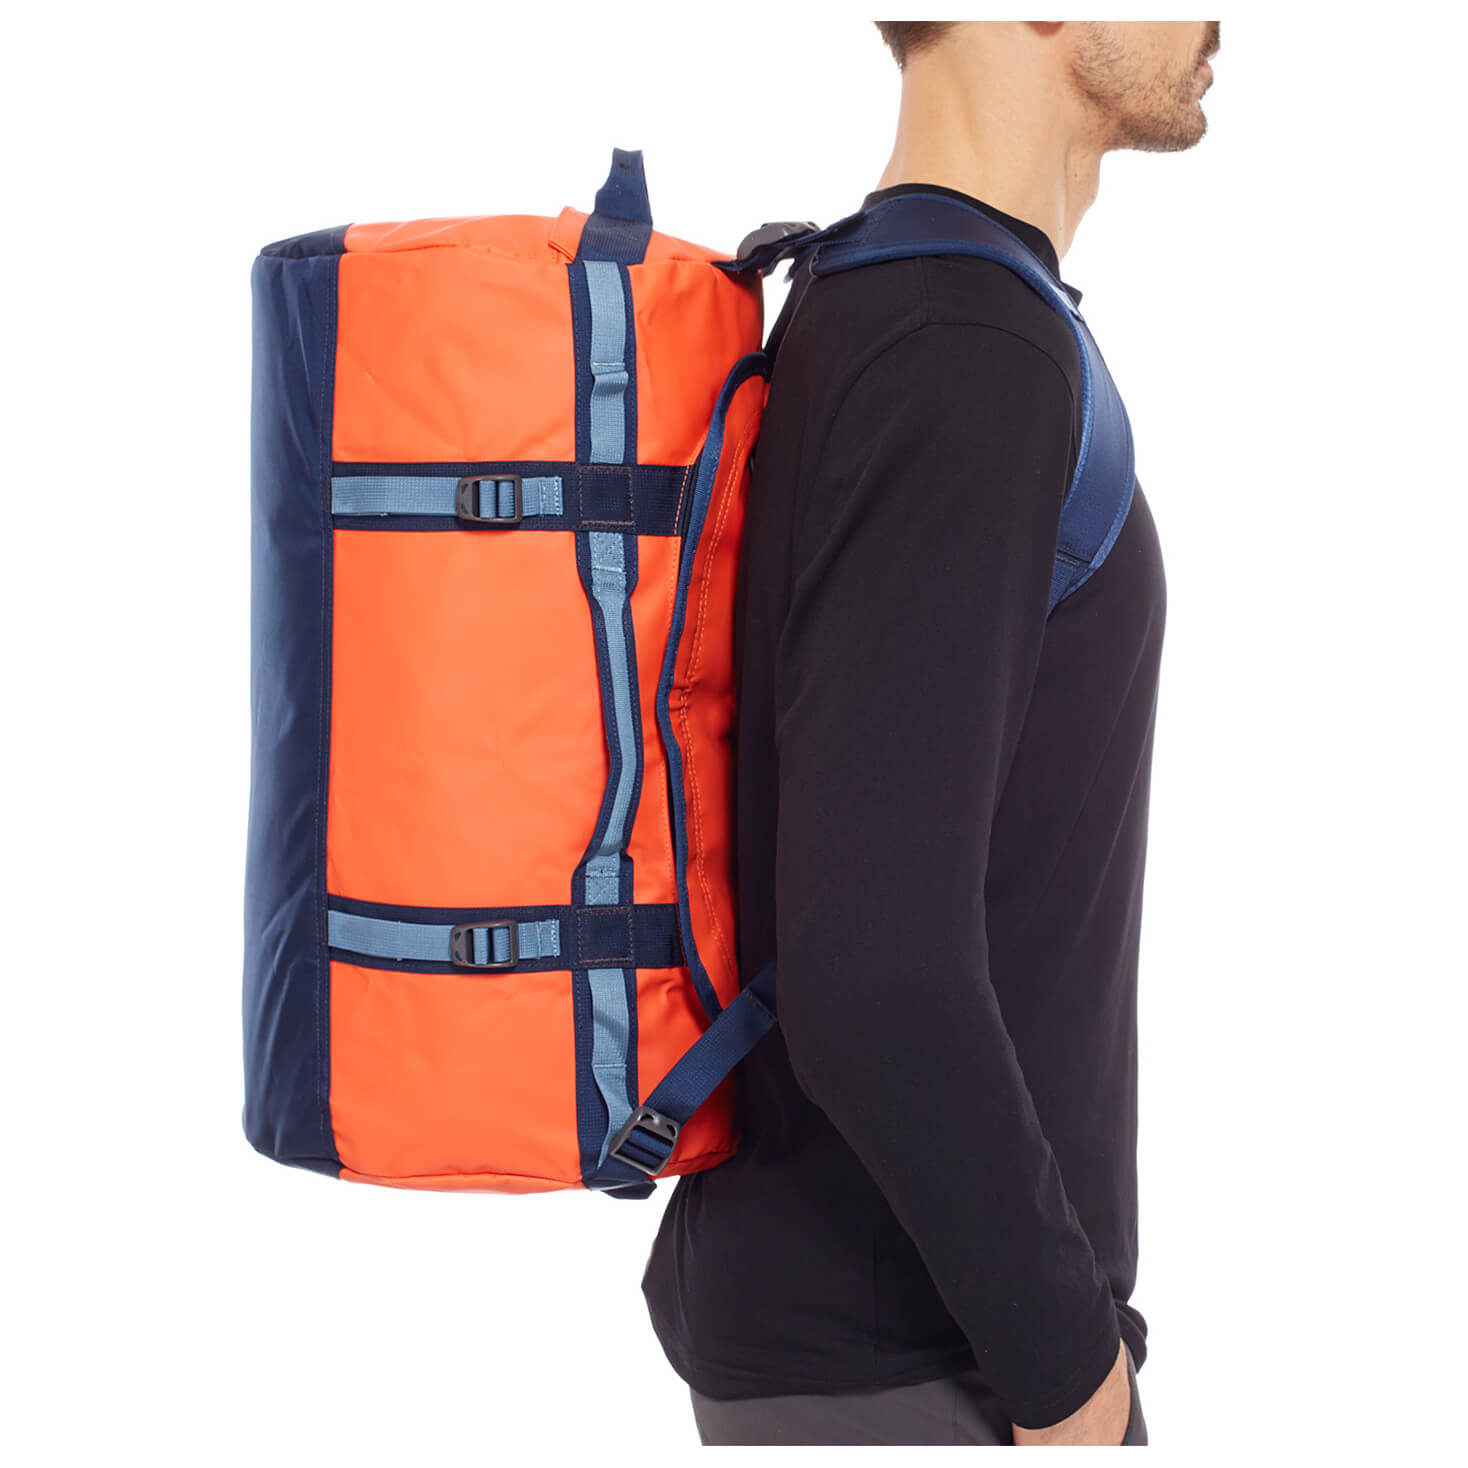 Tutti Sudore meraviglia  Base Camp Duffel XXL | Free Shipping | The North Face